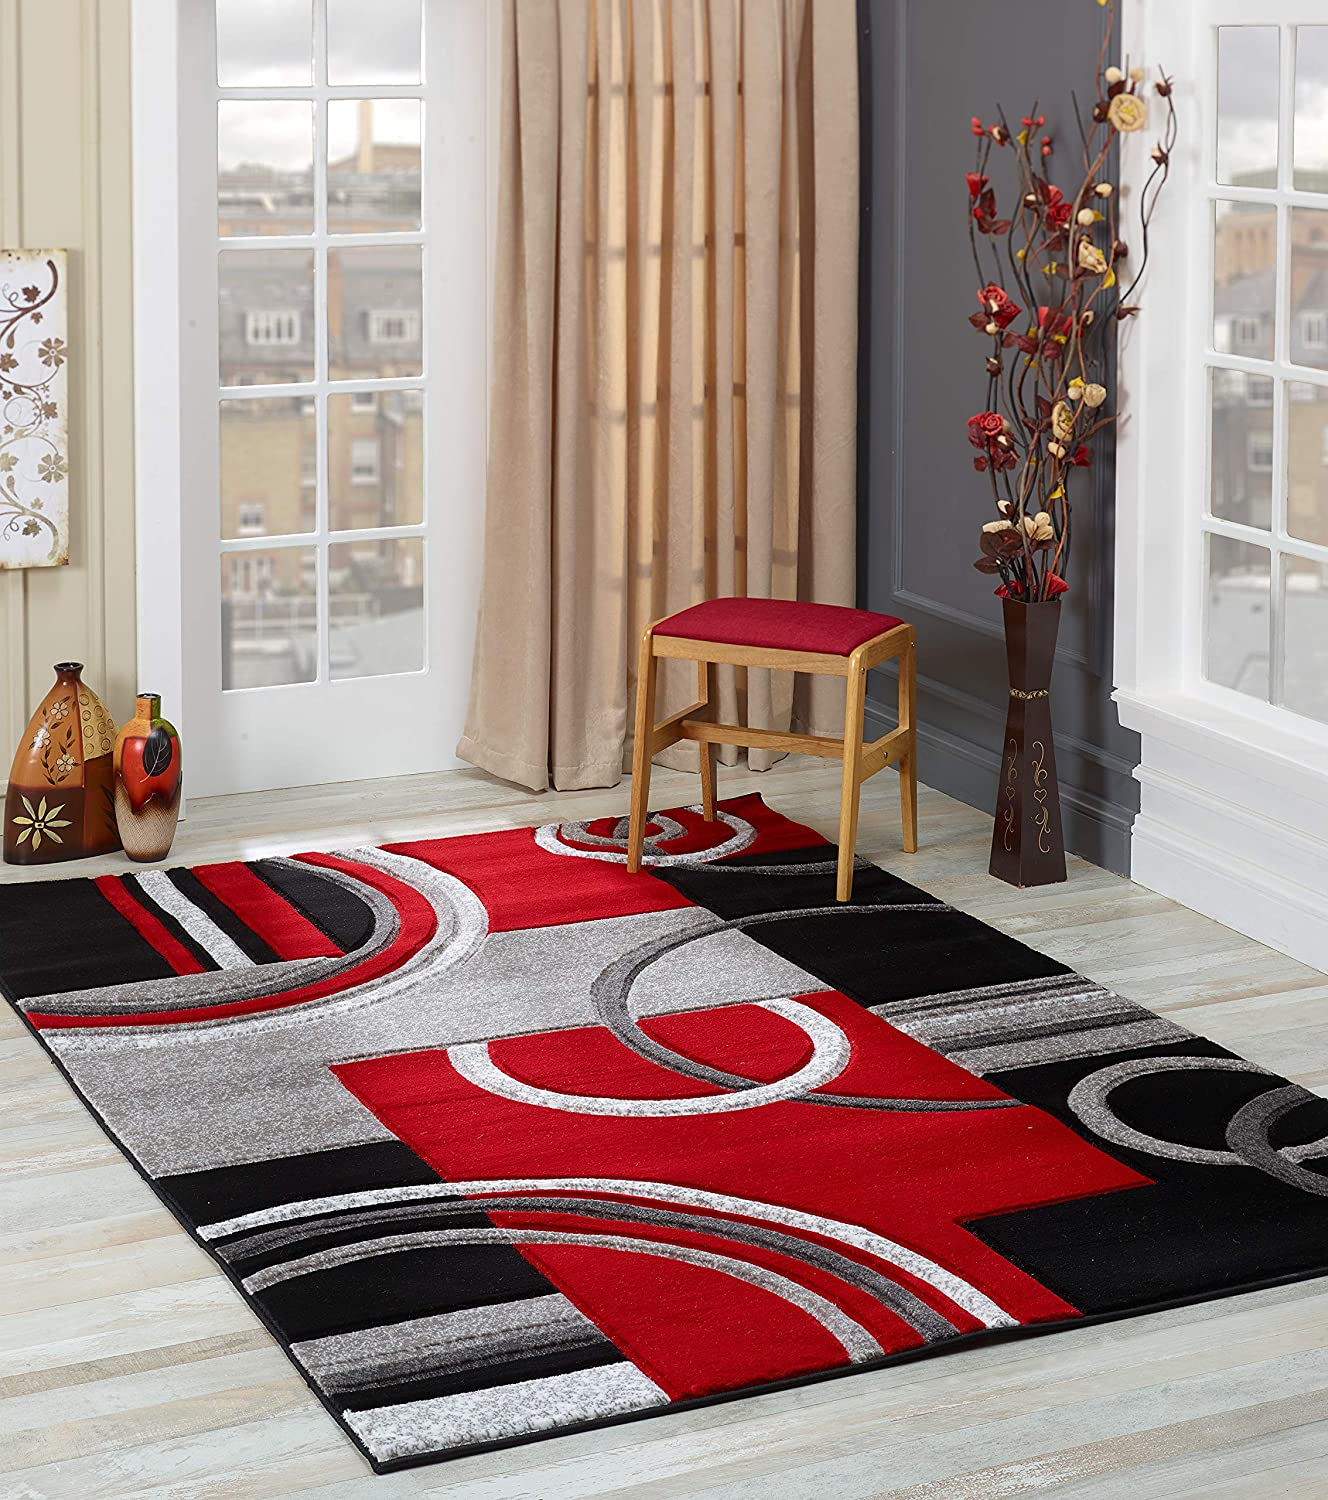 Amazon Com Glory Rugs Area Rug Modern 5x7 Red Soft Hand Carved Contemporary Floor Carpet With Premium Fluffy Texture For Indoor Living Dining Room And Bedroom Area Home Kitchen